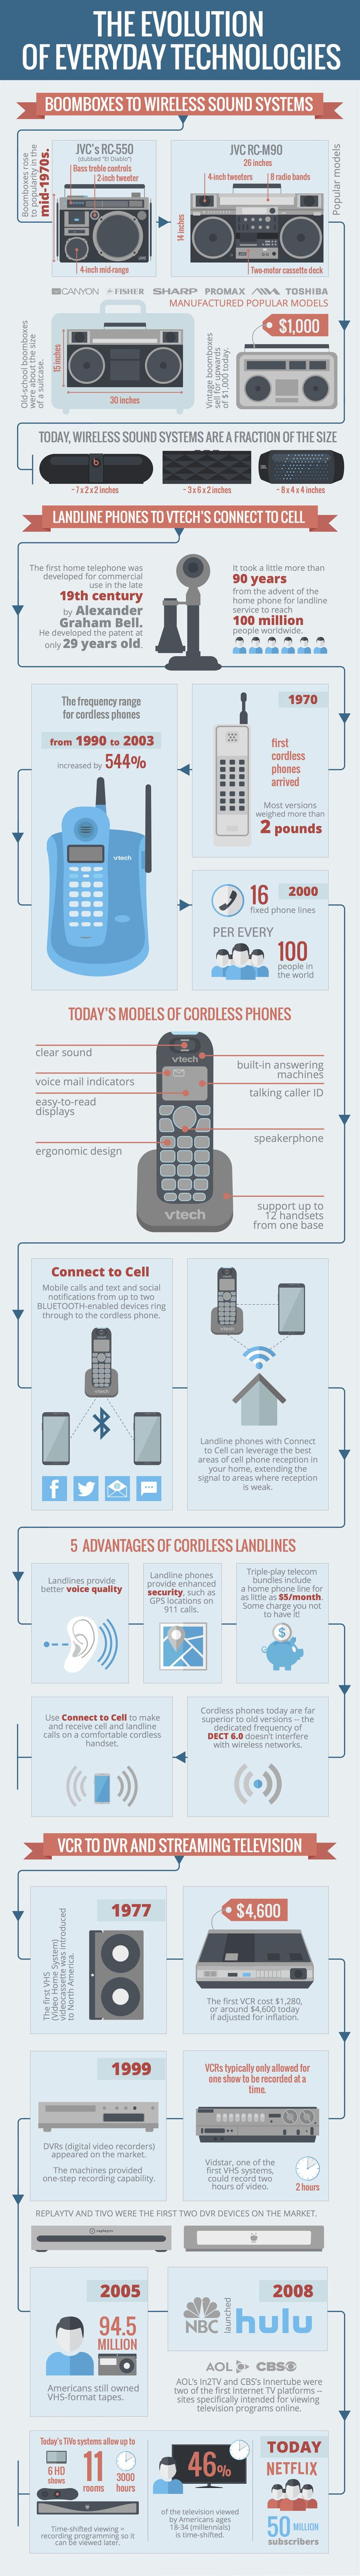 A visual look at the evolution of everyday tech